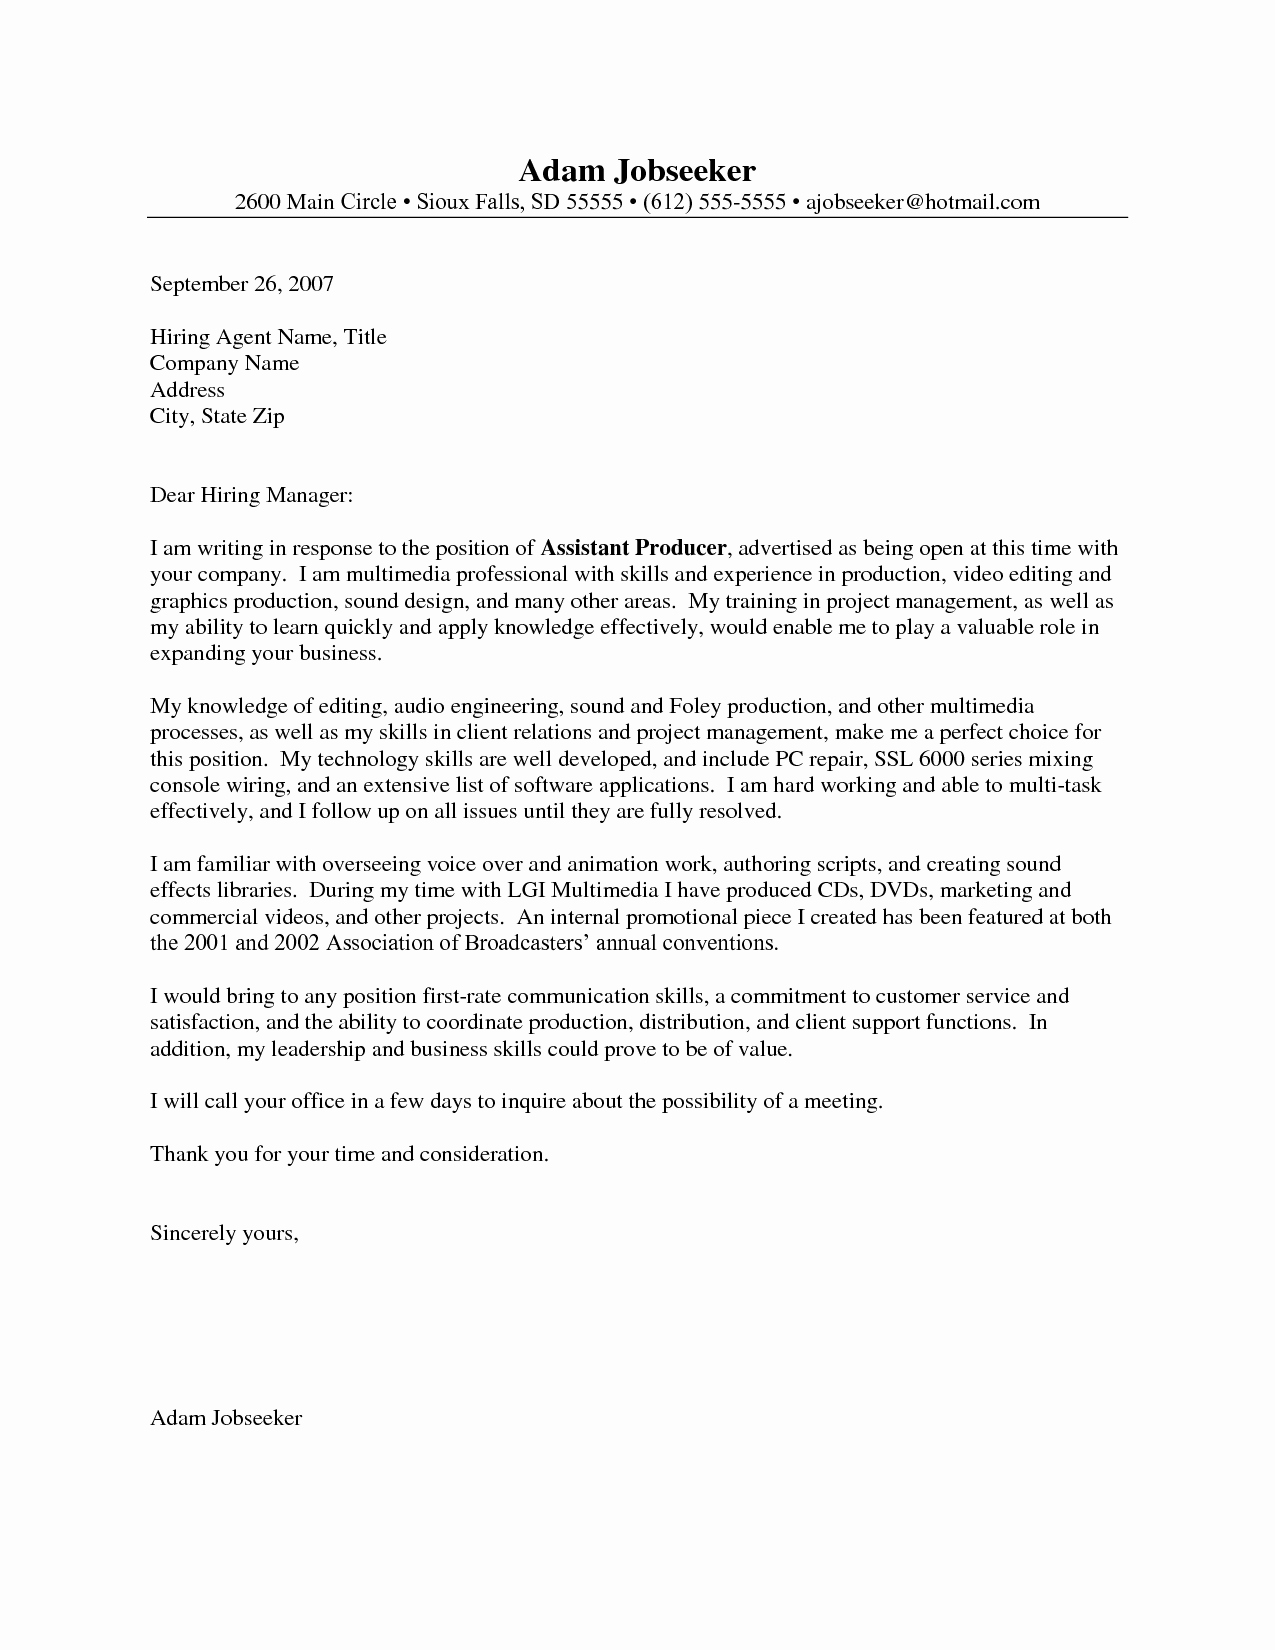 Cover Letter Examples Entry Level Lovely Entry Level Cover Letter Example Job Pinterest